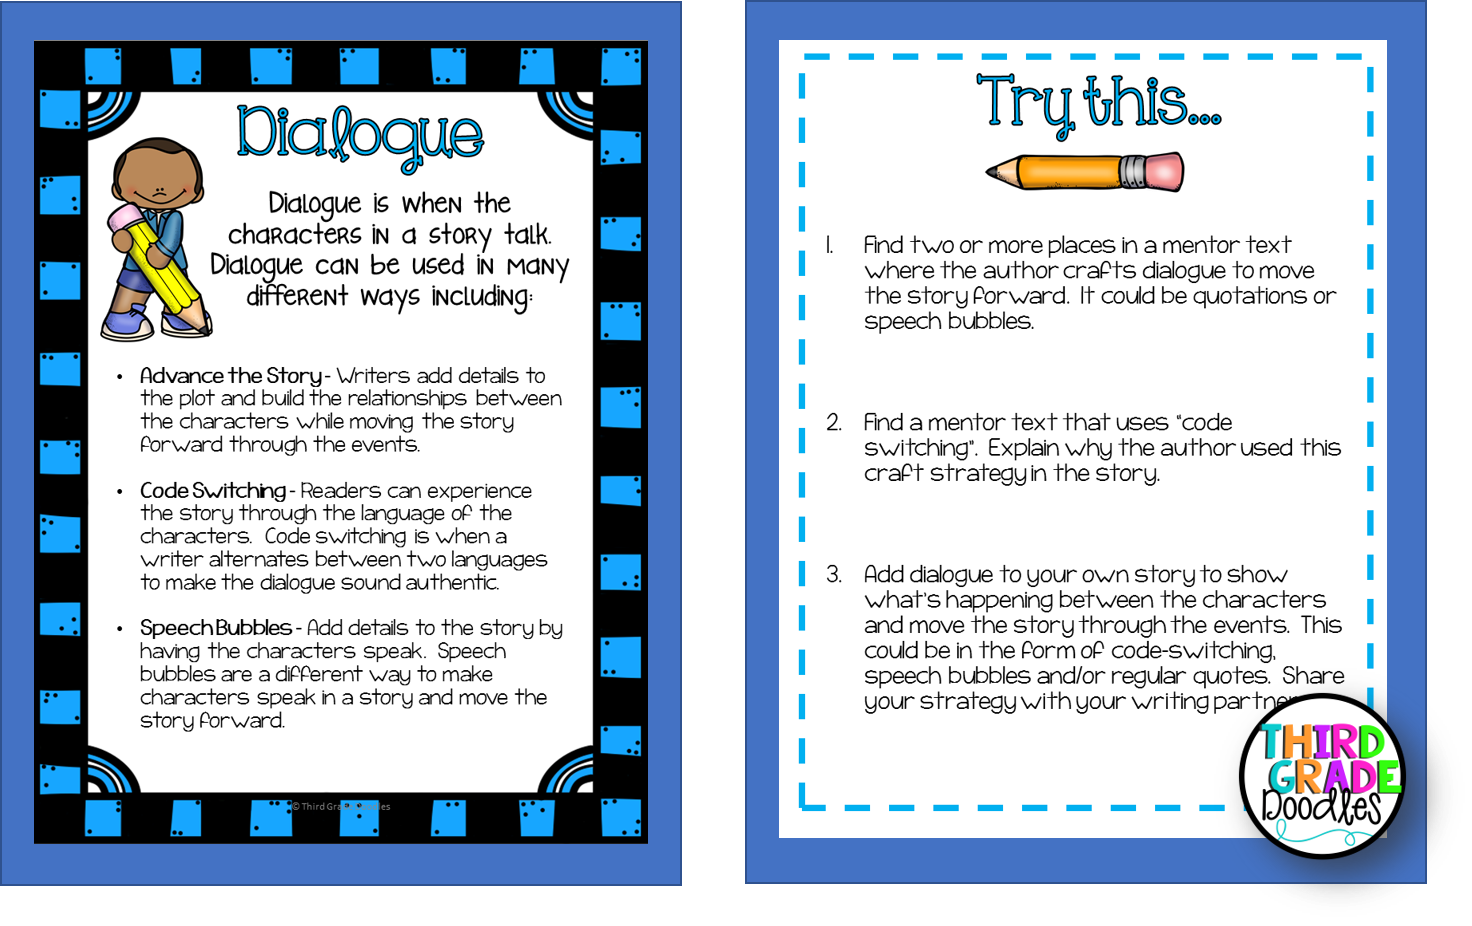 Teaching Personal Narrative Writing - Step By Step! - Third Grade Doodles [ 926 x 1472 Pixel ]